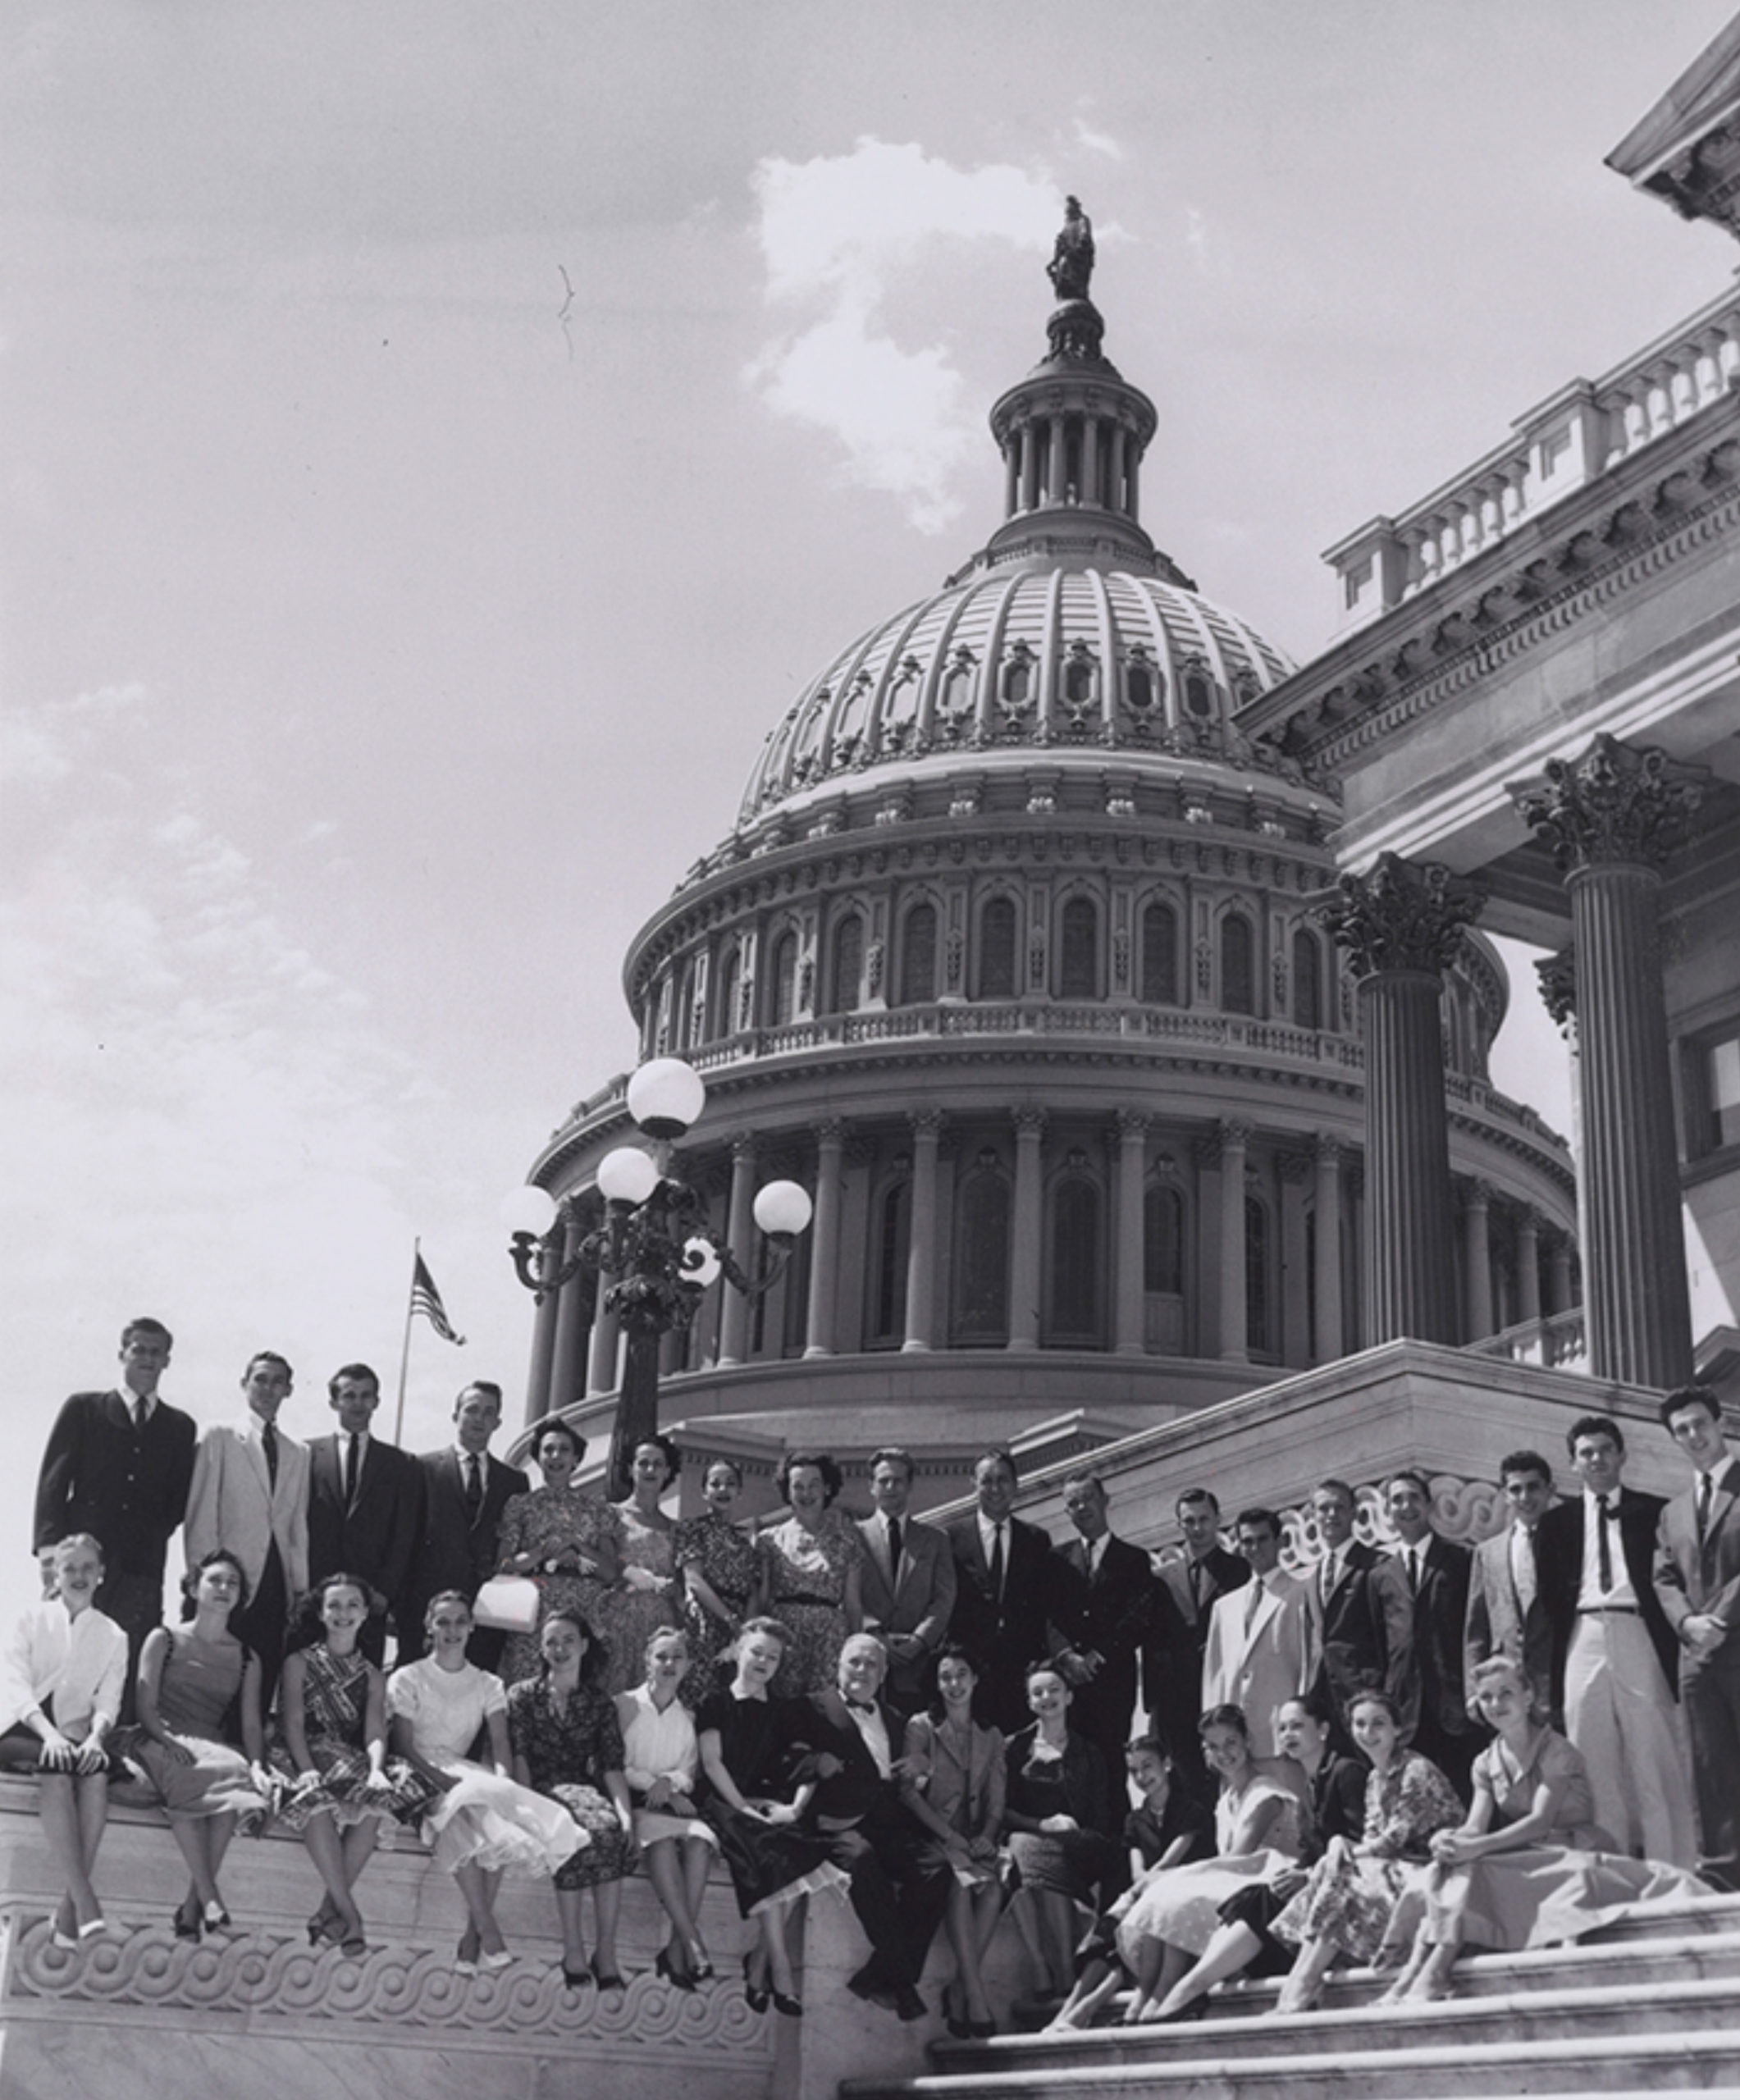 The Company on the steps of the U.S. Capitol building, 1962. Courtesy of American Ballet Theatre Collection, Music Division, Library of Congress.